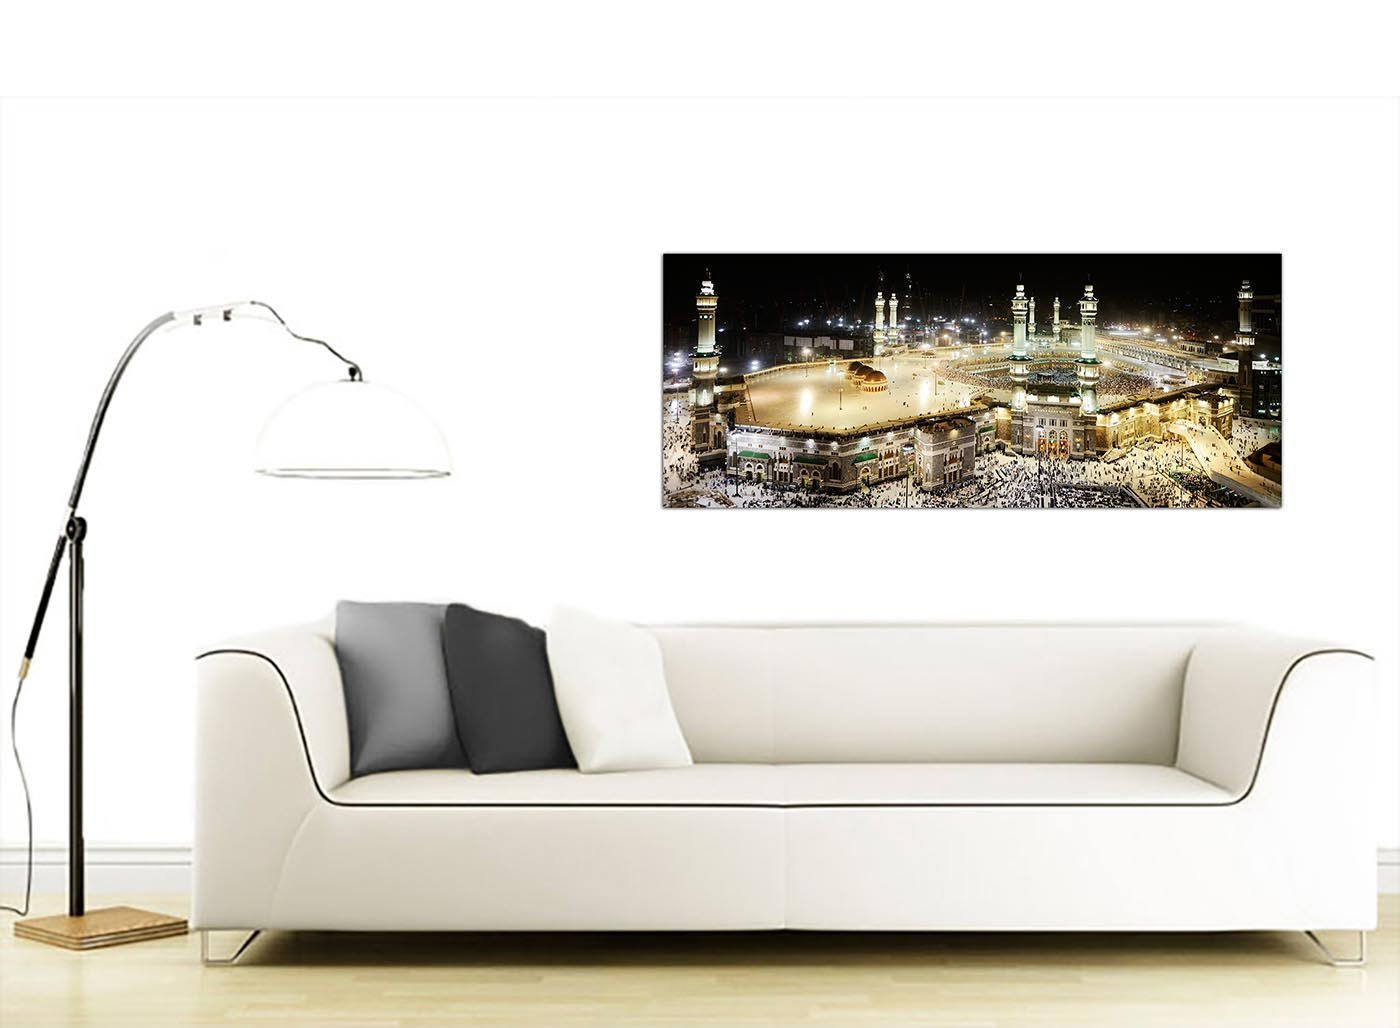 Large Islamic Canvas Wall Art Prints of Muslim Hajj Pilgrimage to Kabba in Mecca at Night - 1190 - Wallfillers Amazon.co.uk Kitchen u0026 Home  sc 1 st  Amazon UK & Large Islamic Canvas Wall Art Prints of Muslim Hajj Pilgrimage to ...